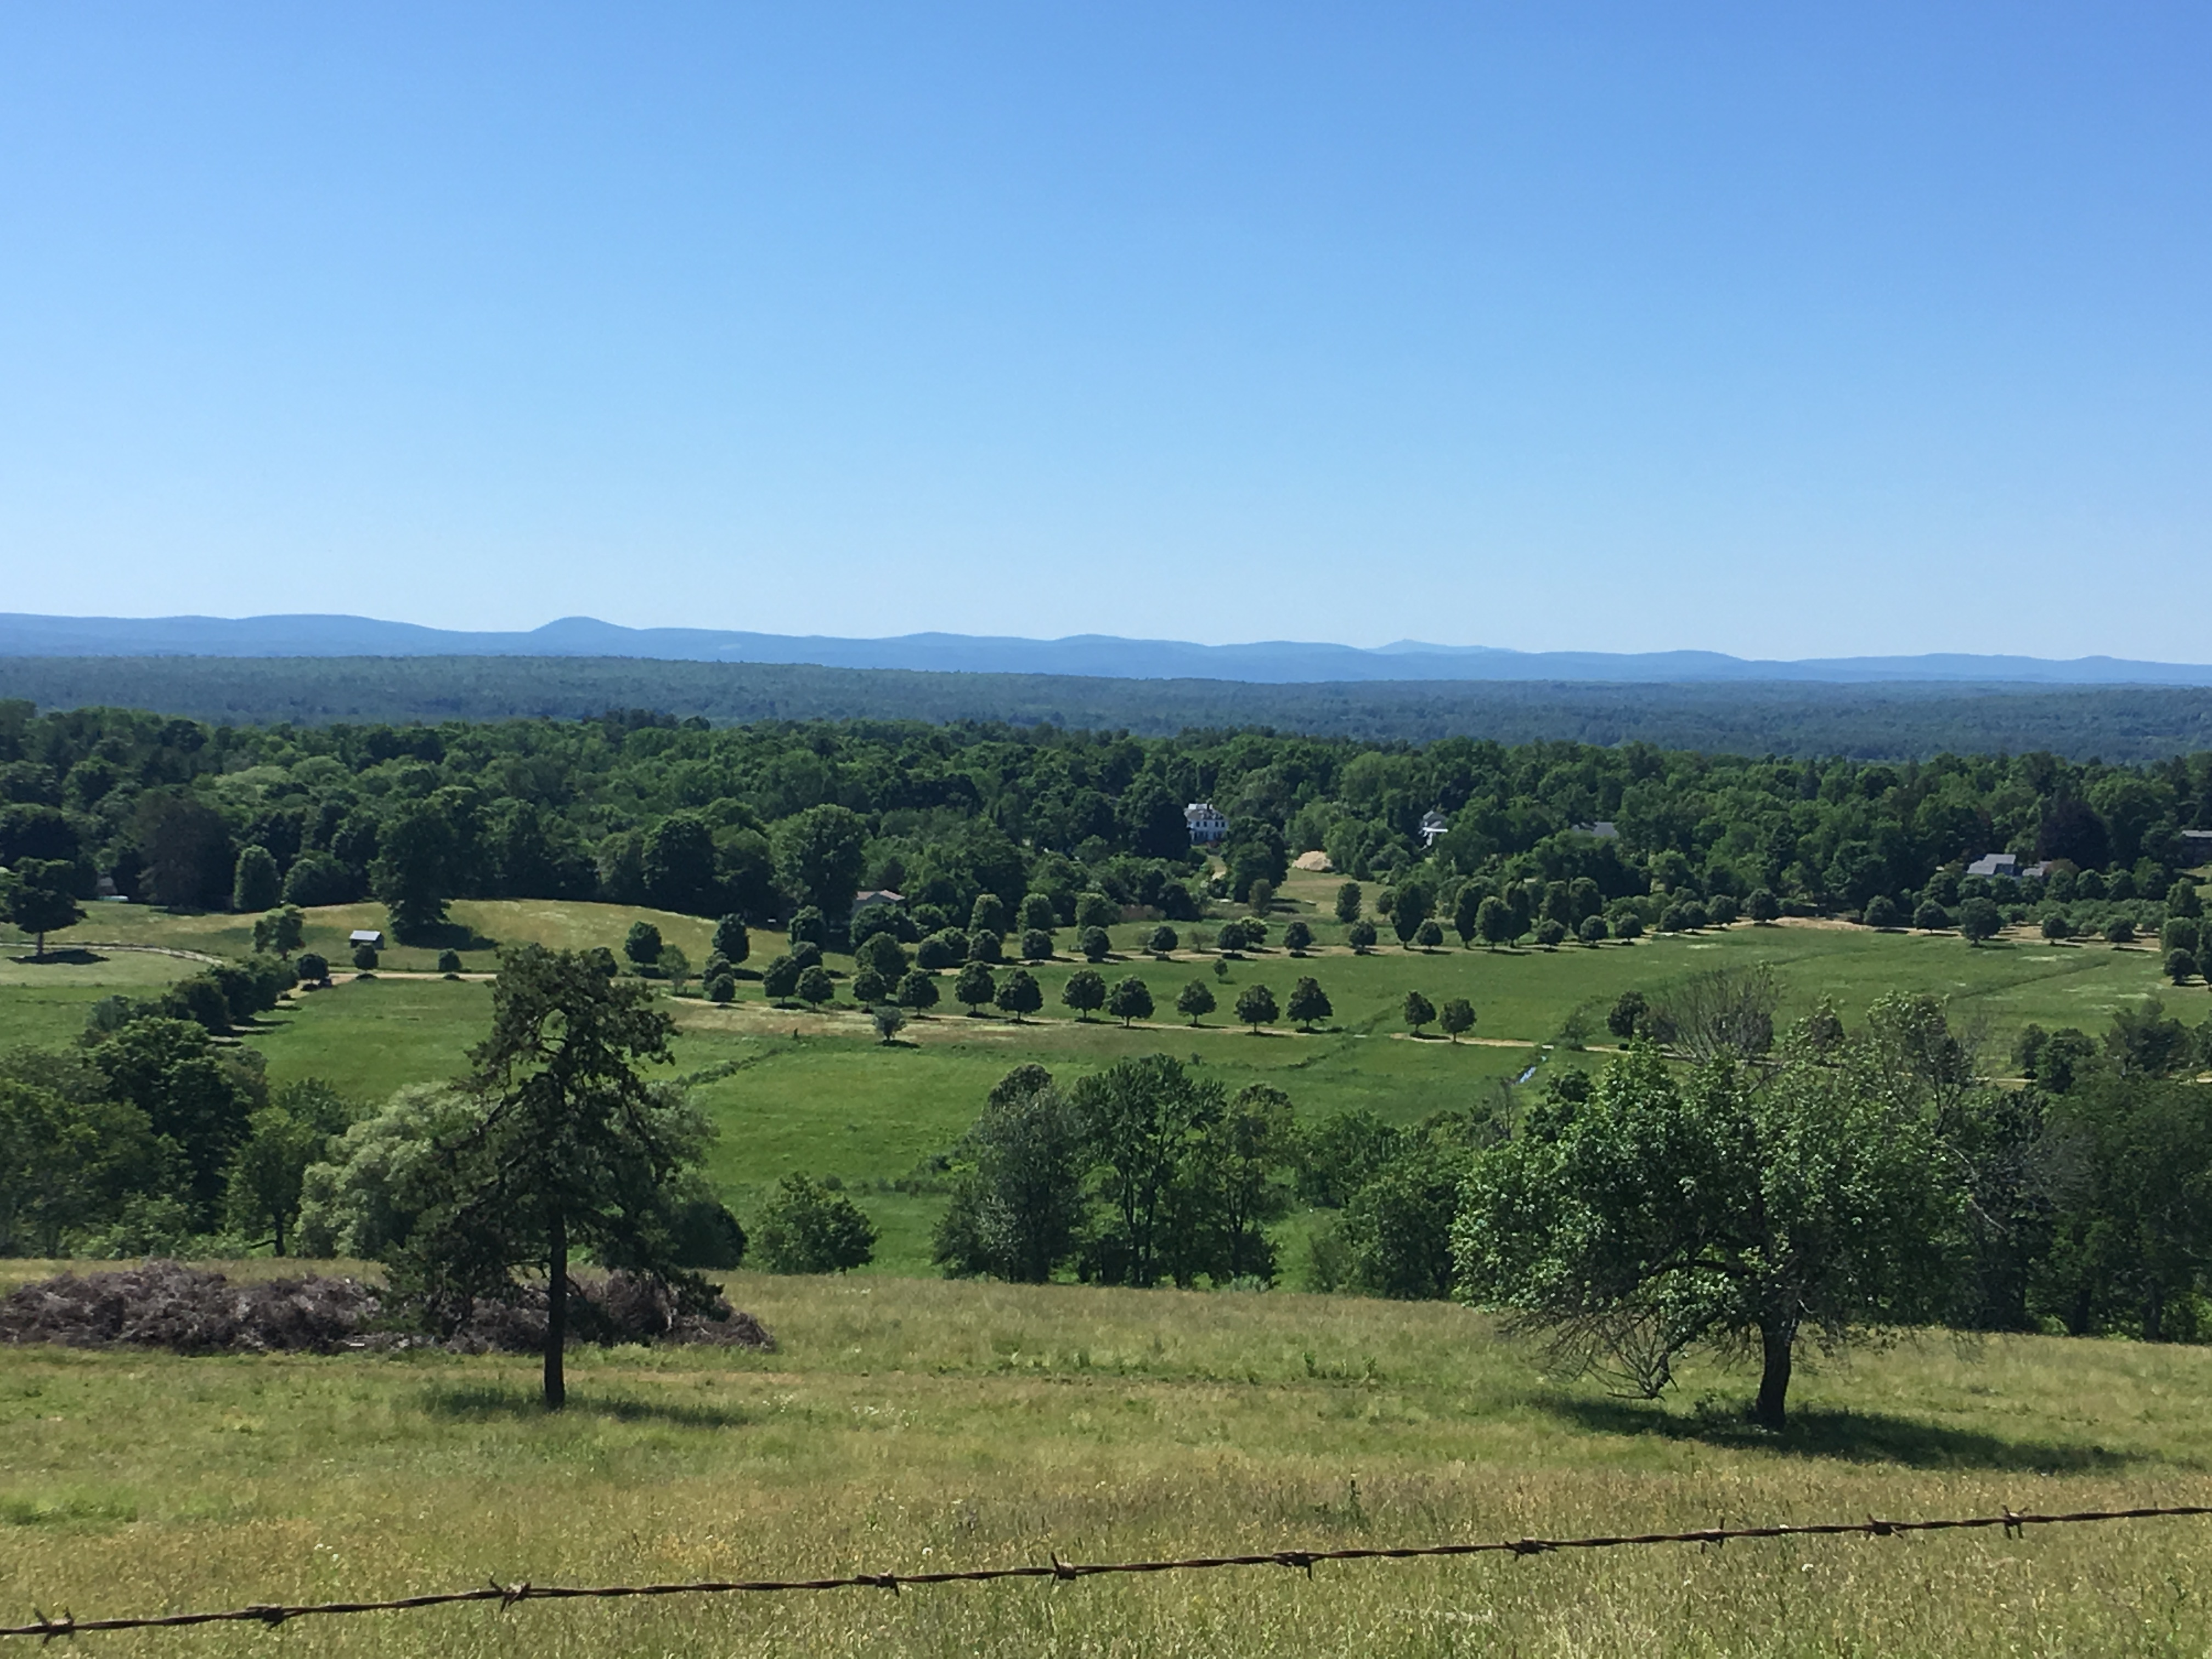 The view from Gibbet Hill in Groton Mass